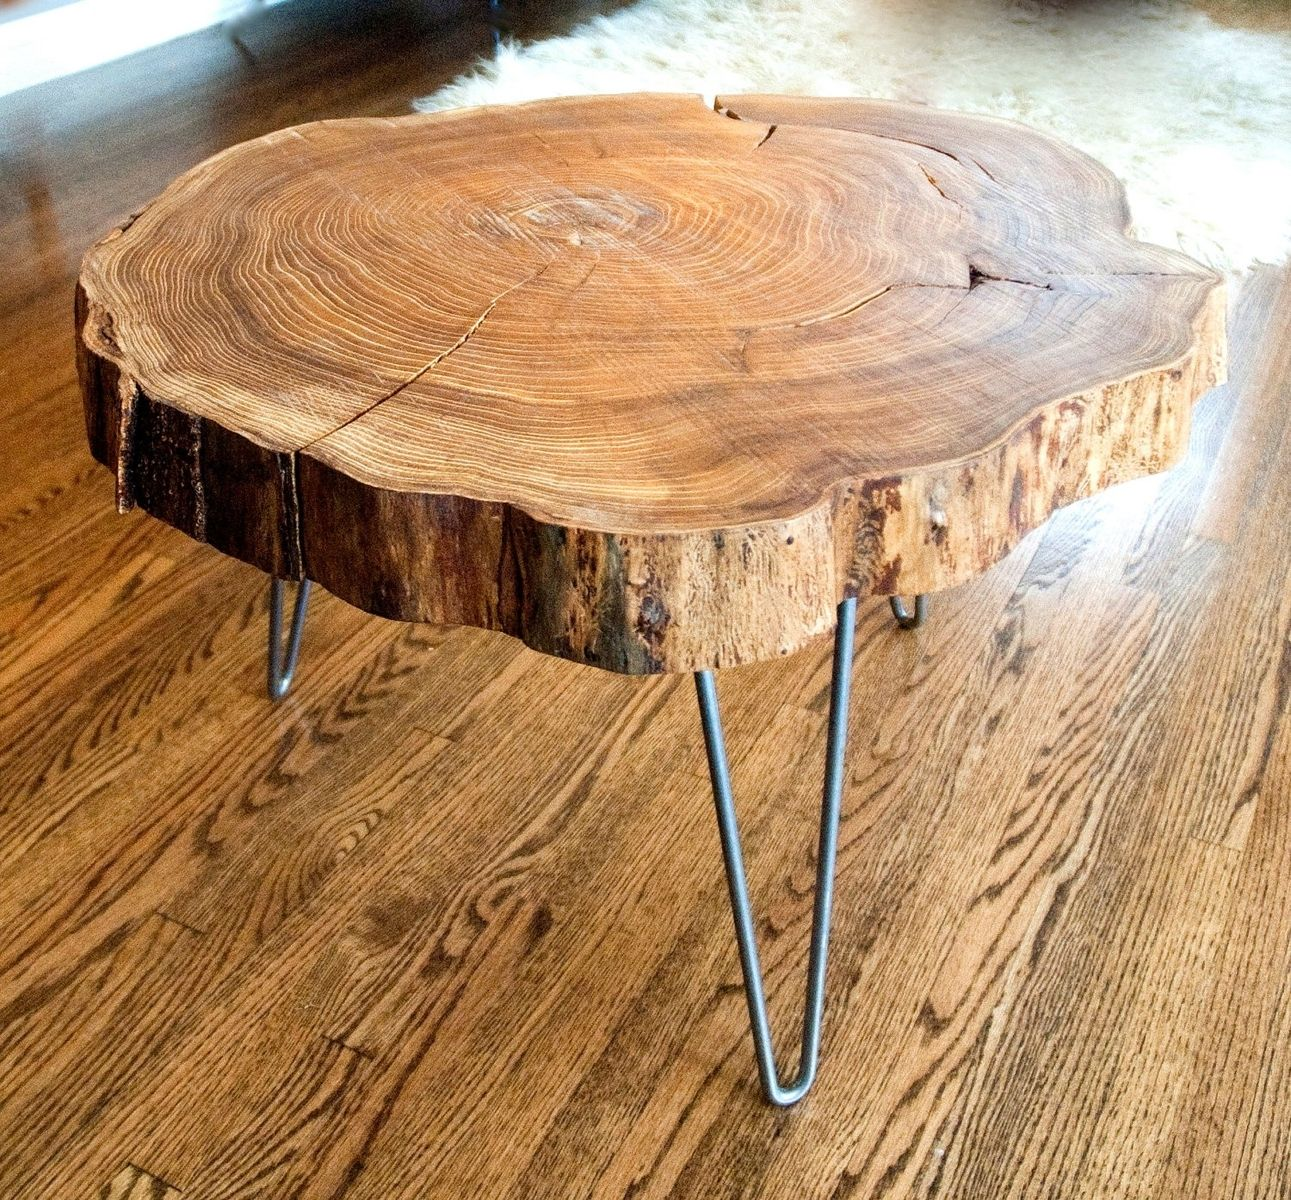 Custom Natural Live Edge Round Slab Side Table Coffee With Steel Legs By Norsk Valley